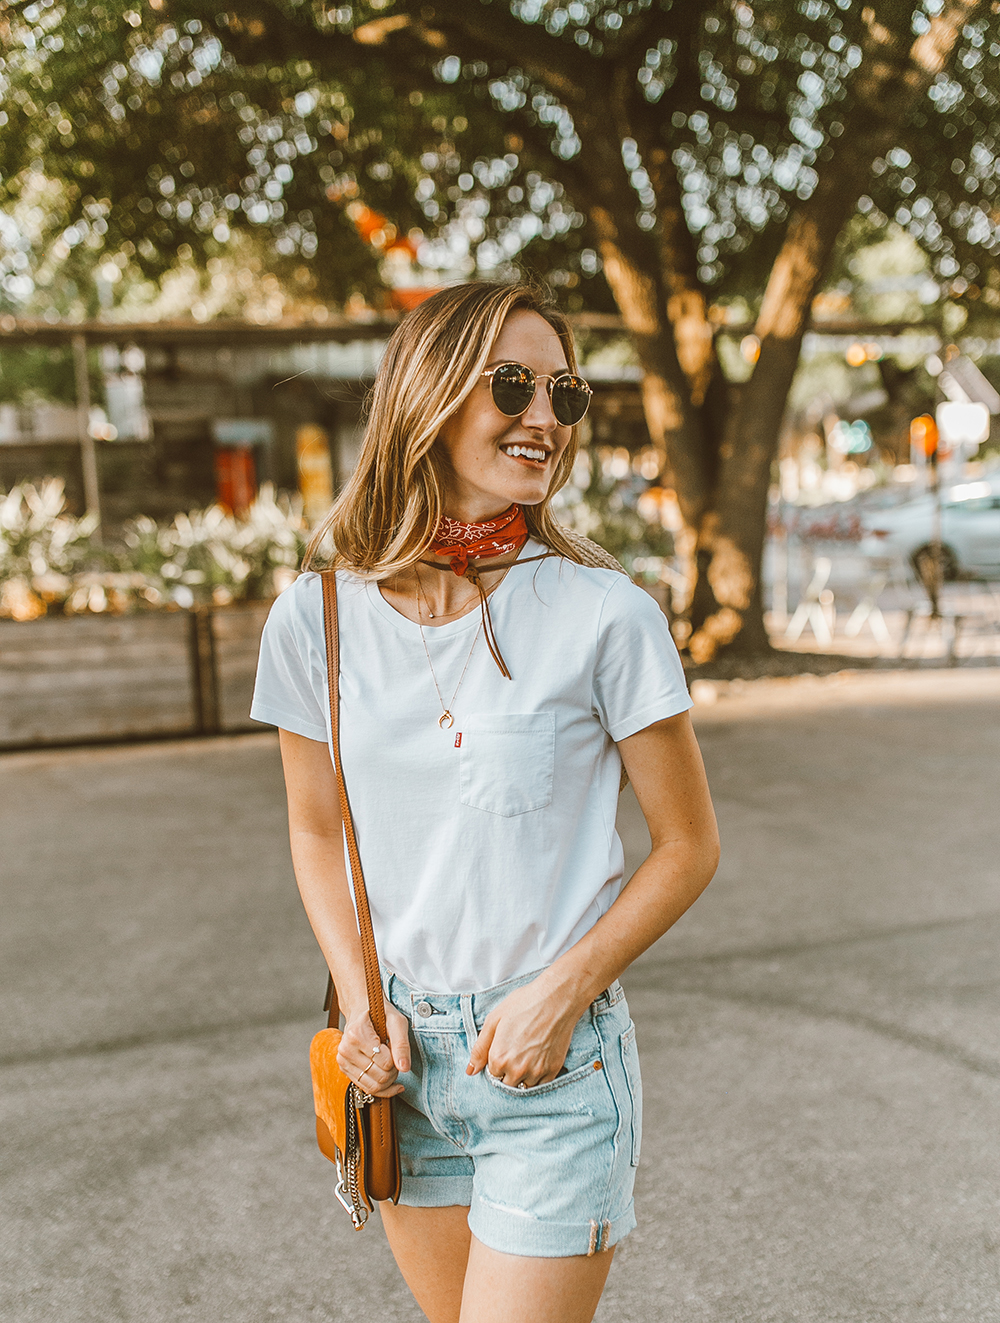 livvyland blog olivia watson austin texas fashion style blogger what to wear levis denim shorts festival outfit idea 1 - Summer time In Levi's